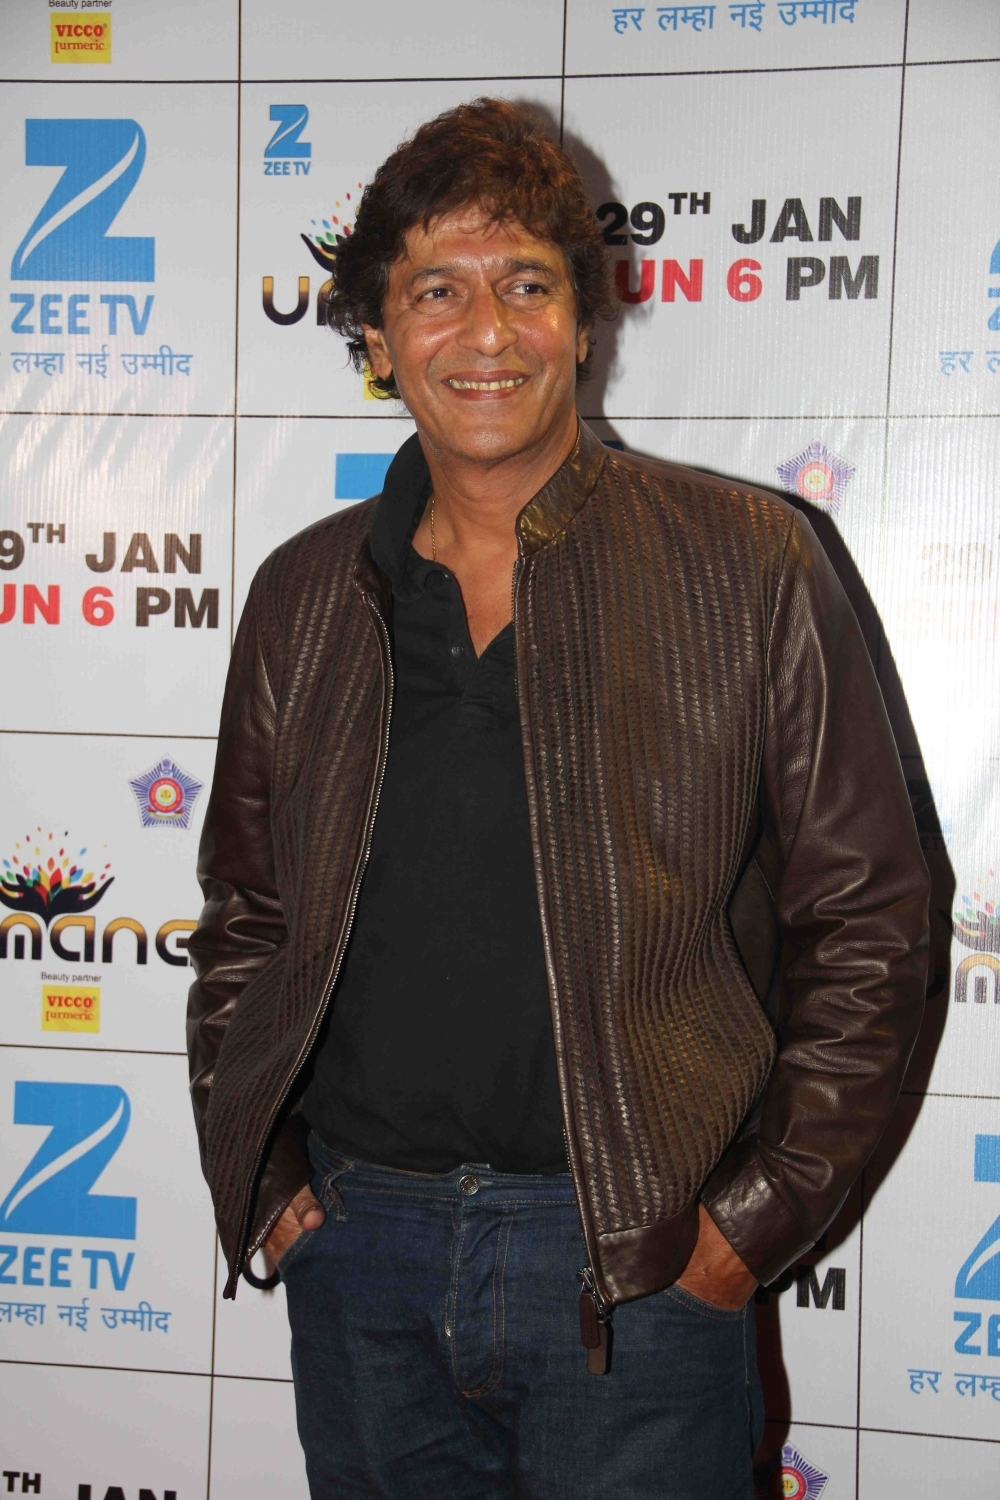 Mumbai: Actor Chunky Pandey during the Umang Mumbai Police Show 2017 in Mumbai on Jan 22, 2017. (Photo: IANS)